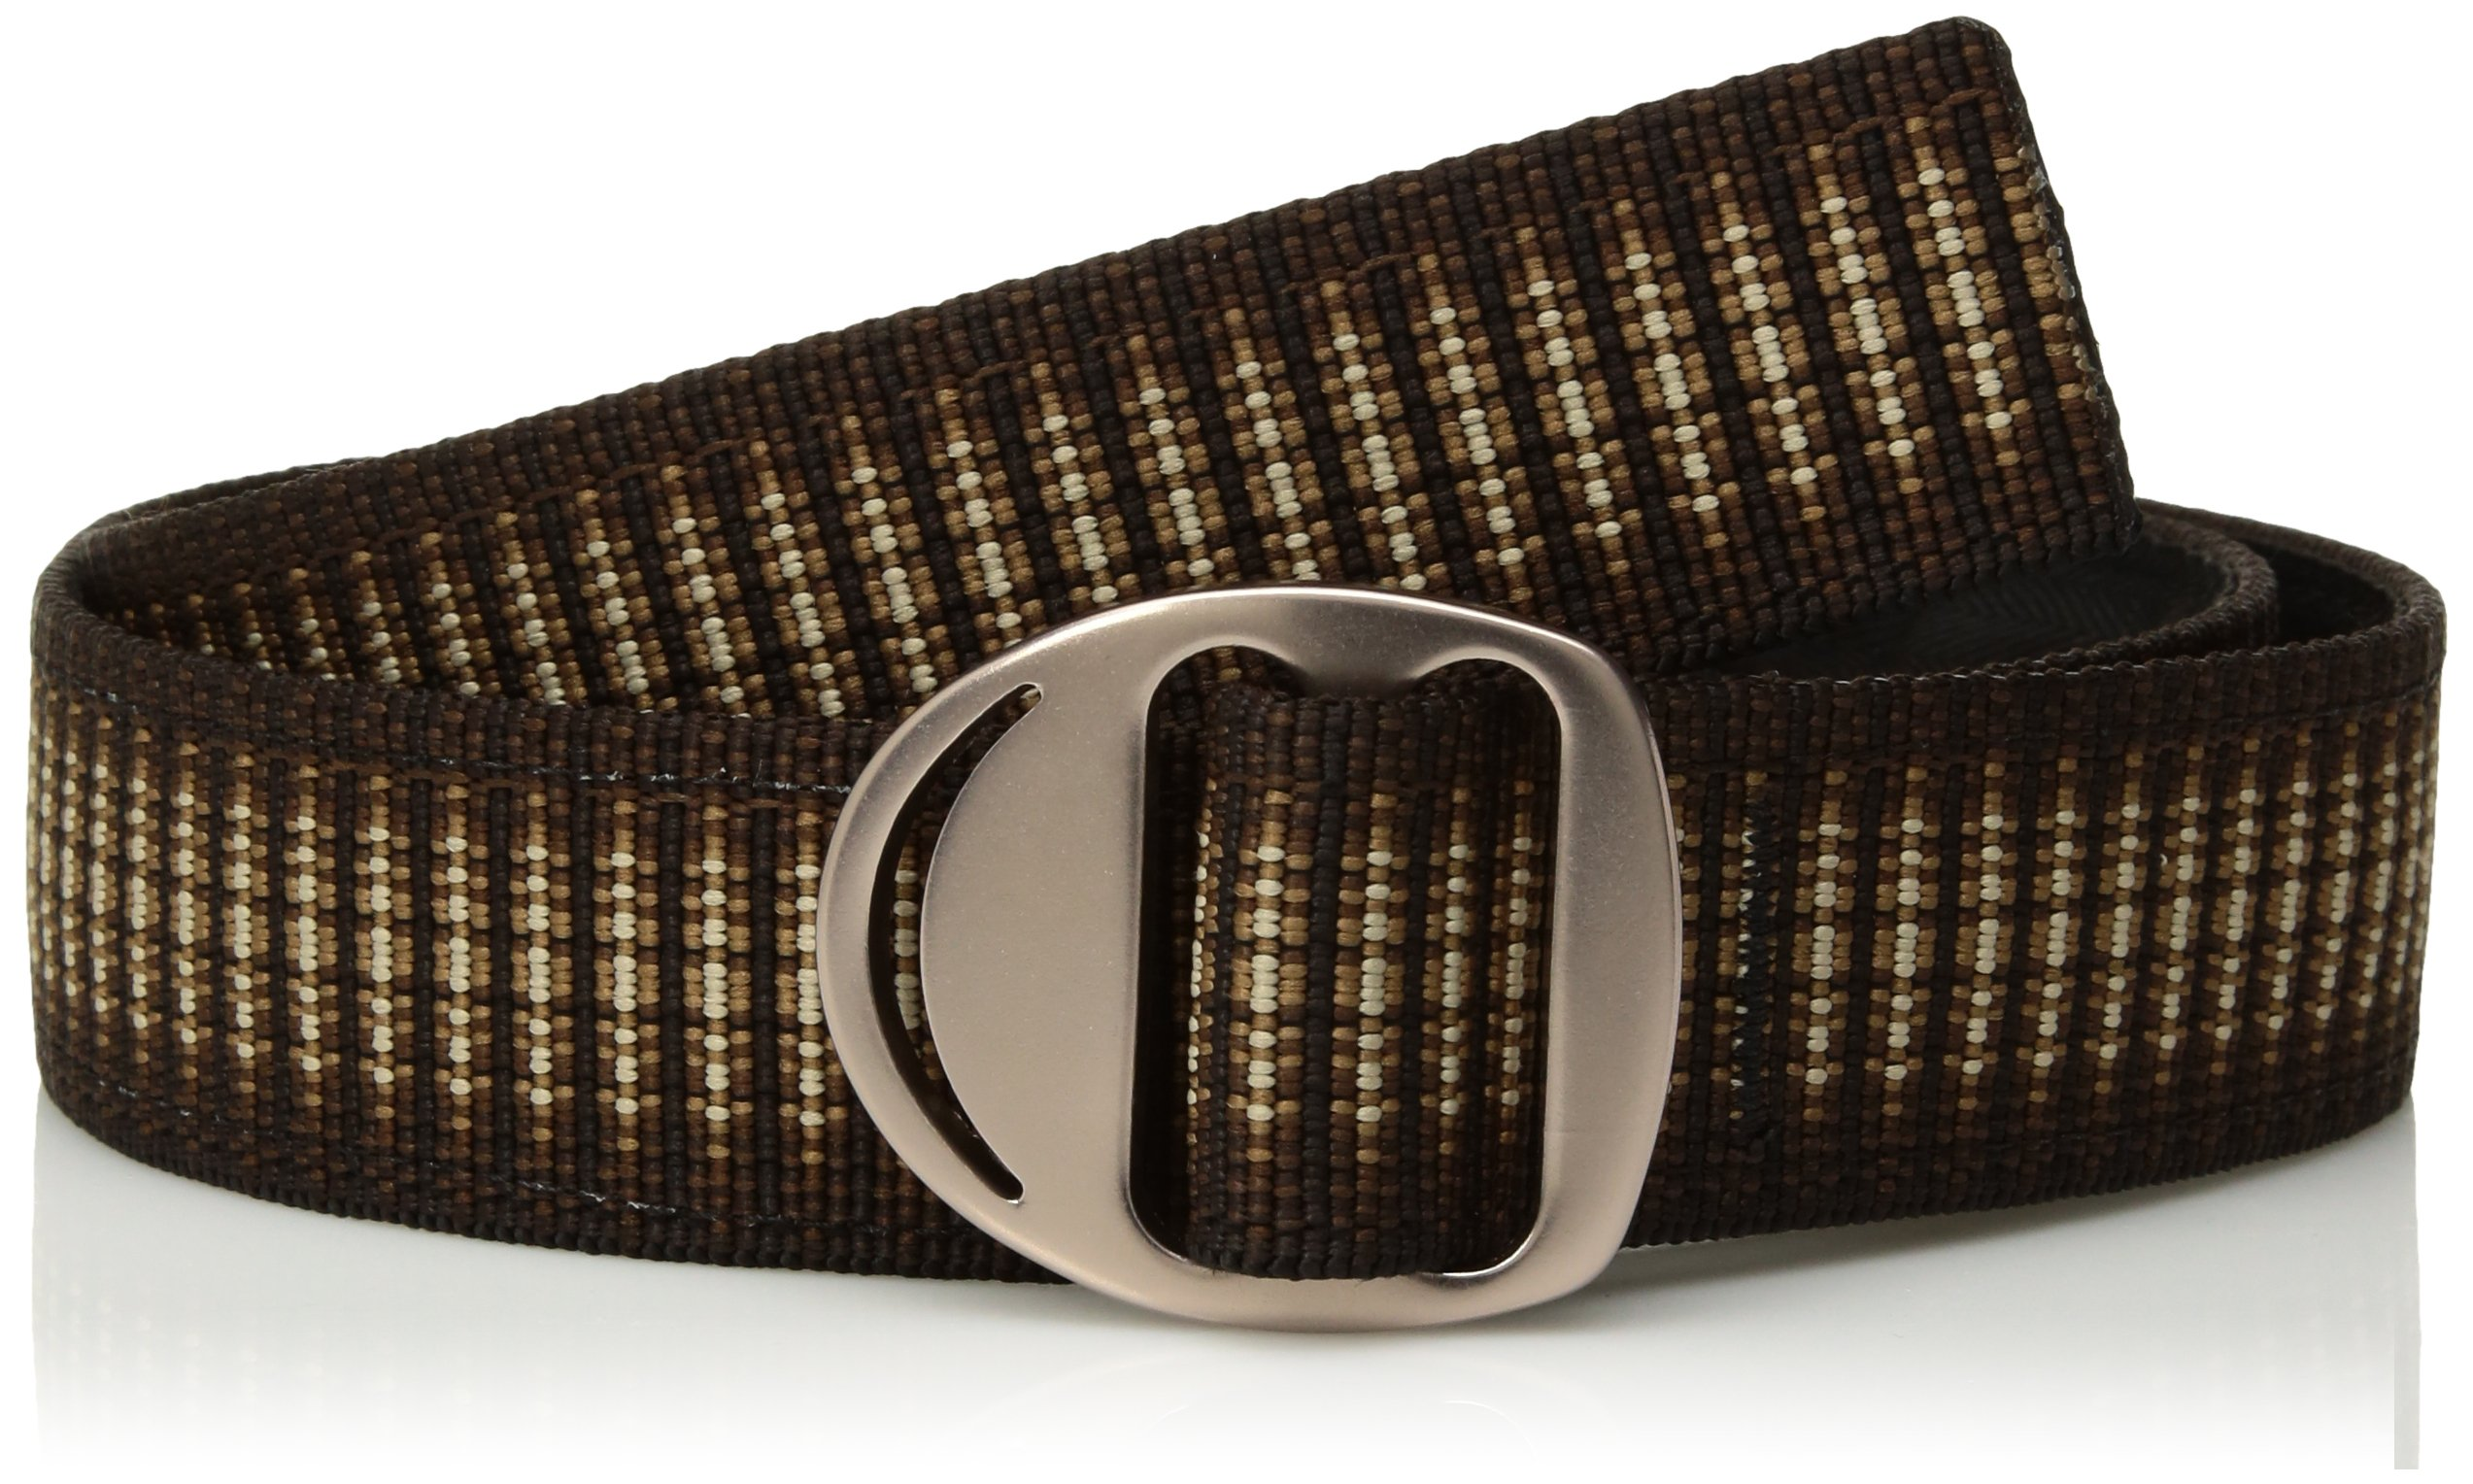 Bison Designs Crescent Money 38mm USA Made Gunmetal Buckle Travel Belt, Cappuccino, Large/42-Inch